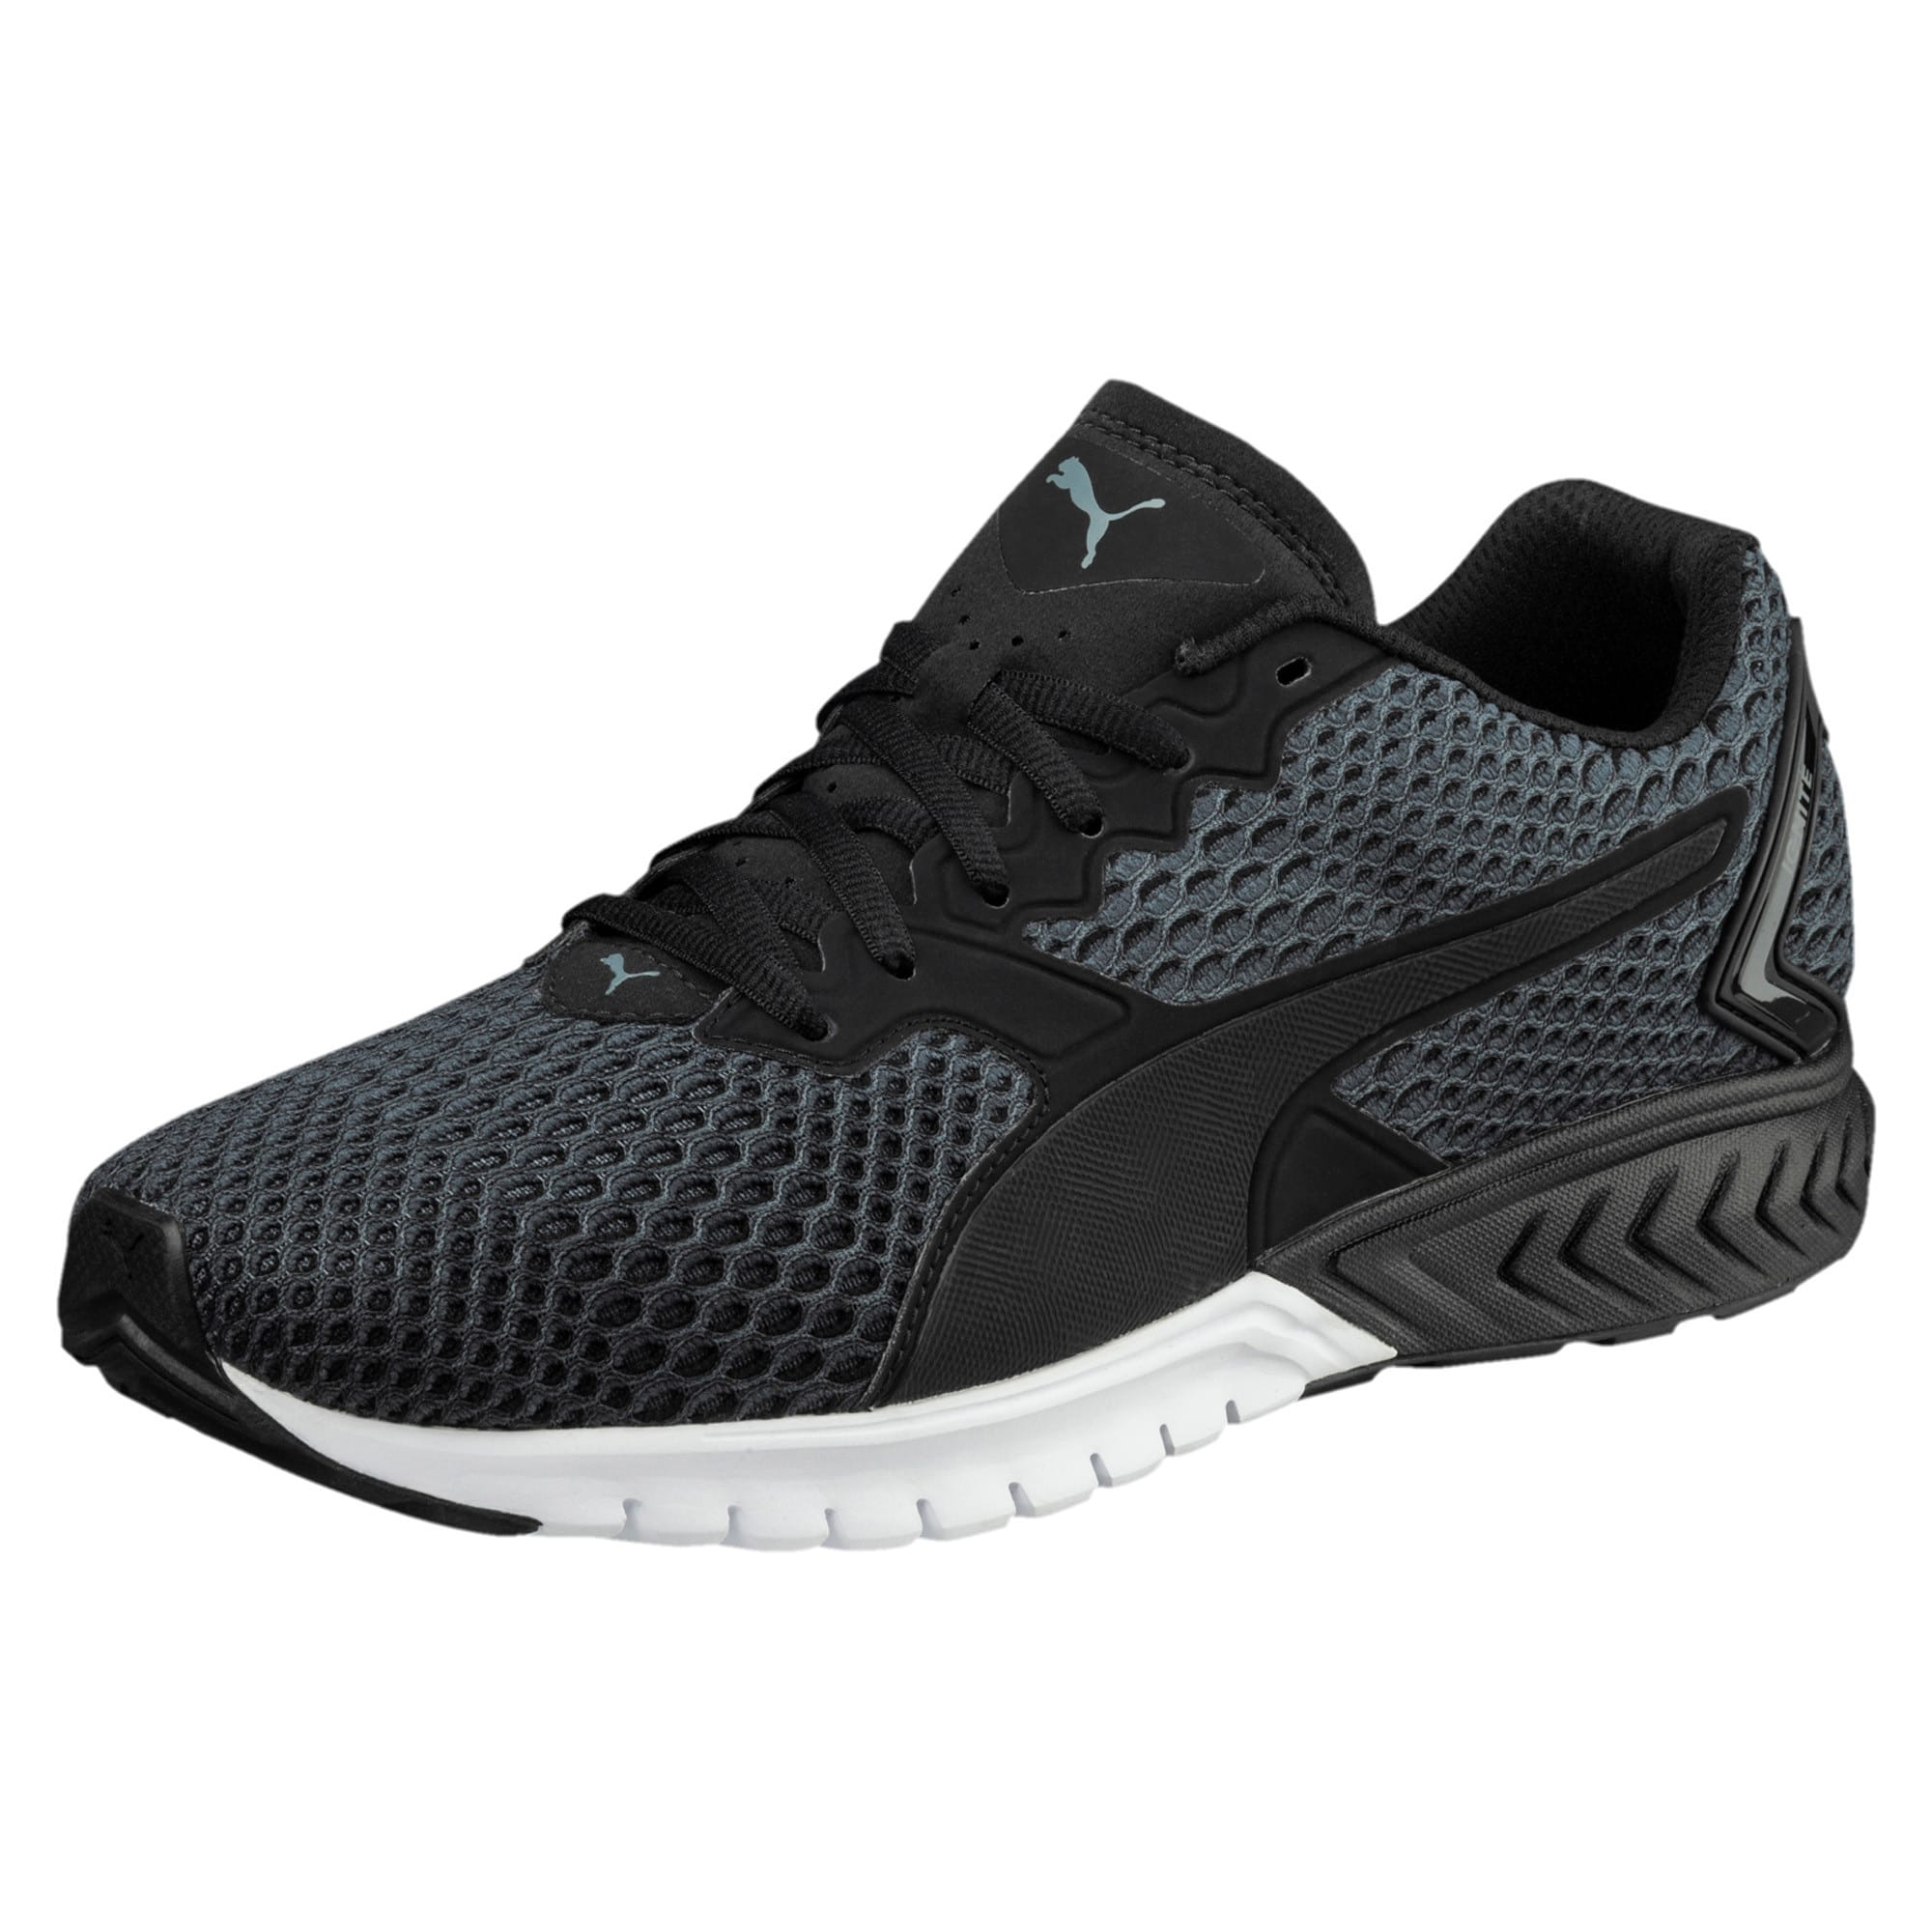 Thumbnail 1 of IGNITE Dual New Core Men's Training Shoes, Puma Black-Asphalt, medium-IND